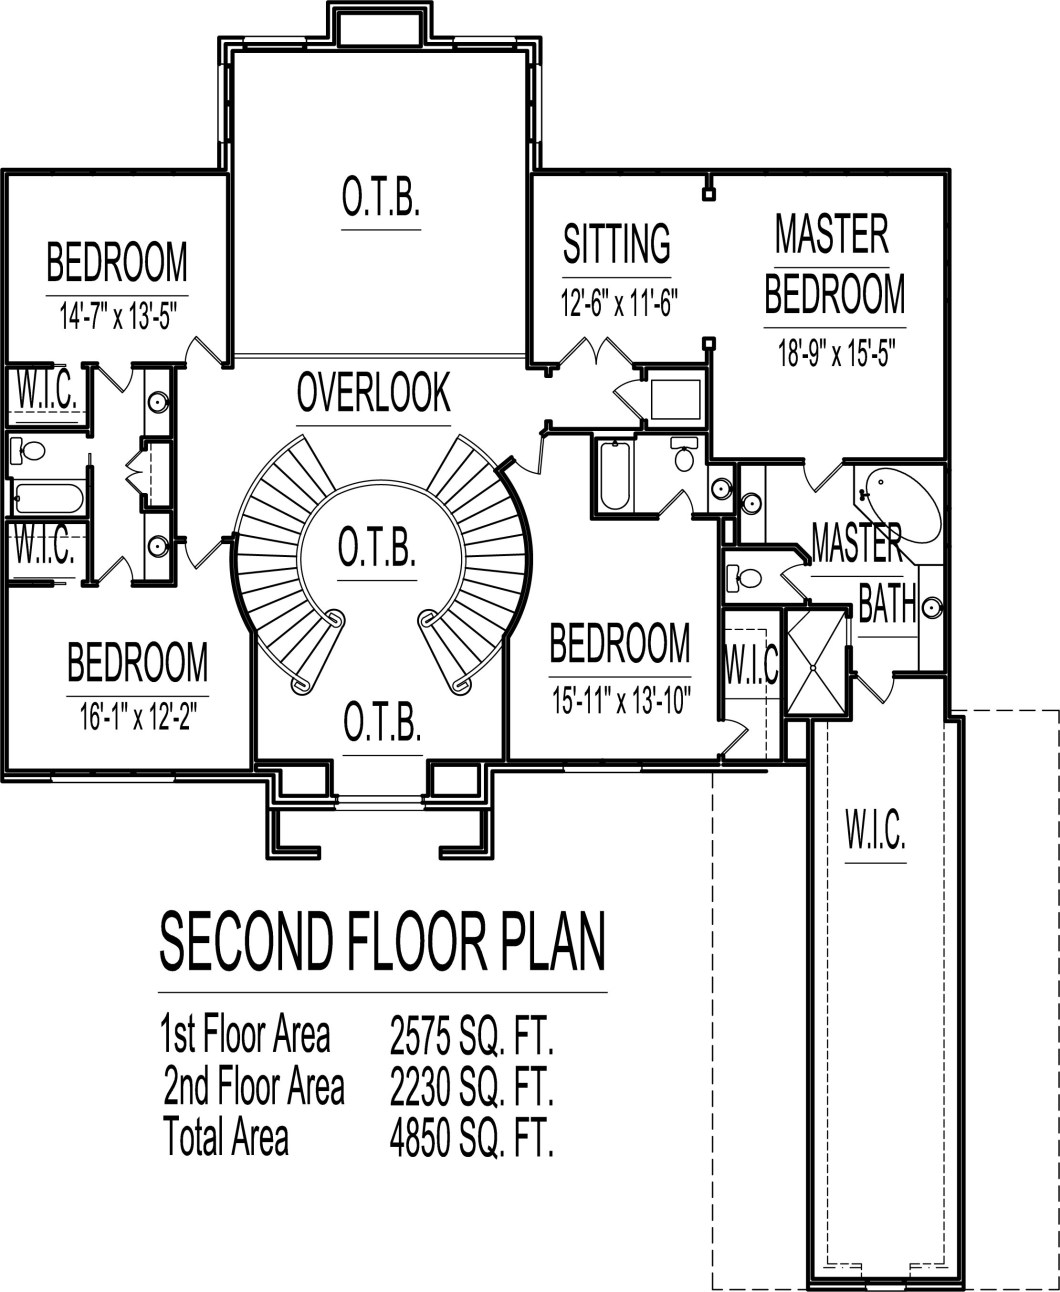 2nd Floor Plan With 4 Bedrooms | Floorviews.co on rustic mountain house plans, small house plans, ranch house plans, craftsman house plans, rustic furniture, rustic looking house plans, modern house plans, rustic colorado house plans, big 5 bedroom house plans, rustic house plans with, southern house plans, antique house plans, traditional house plans, rustic house plans open, cape cod house plans, single story rustic house plans, amicalola cottage house plans, victorian house plans, rustic house plans level 1, 4 bedroom house plans,